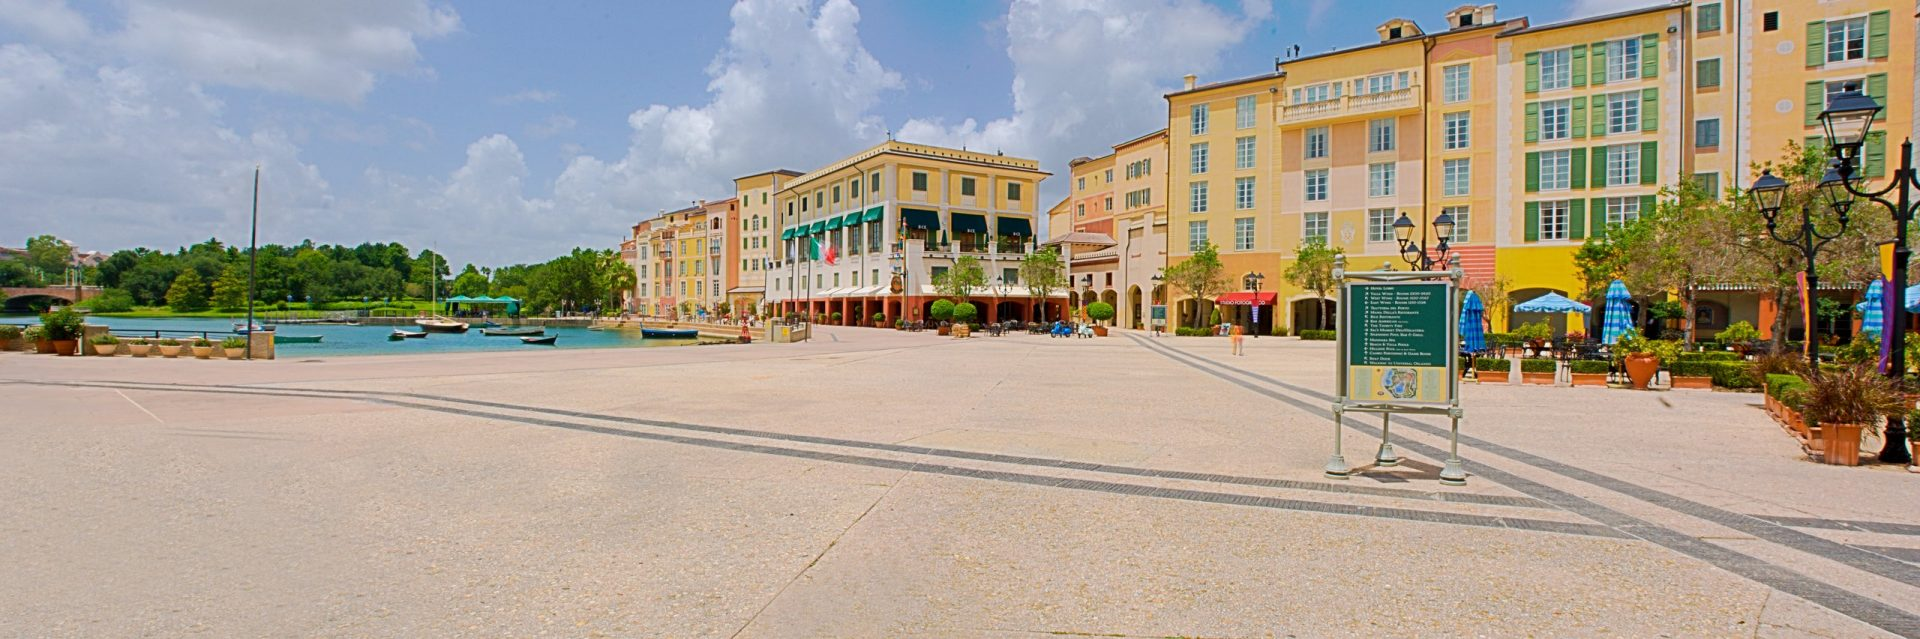 Where to Stay at Universal - The Loews Portofino Bay Hotel Ultimate Guide